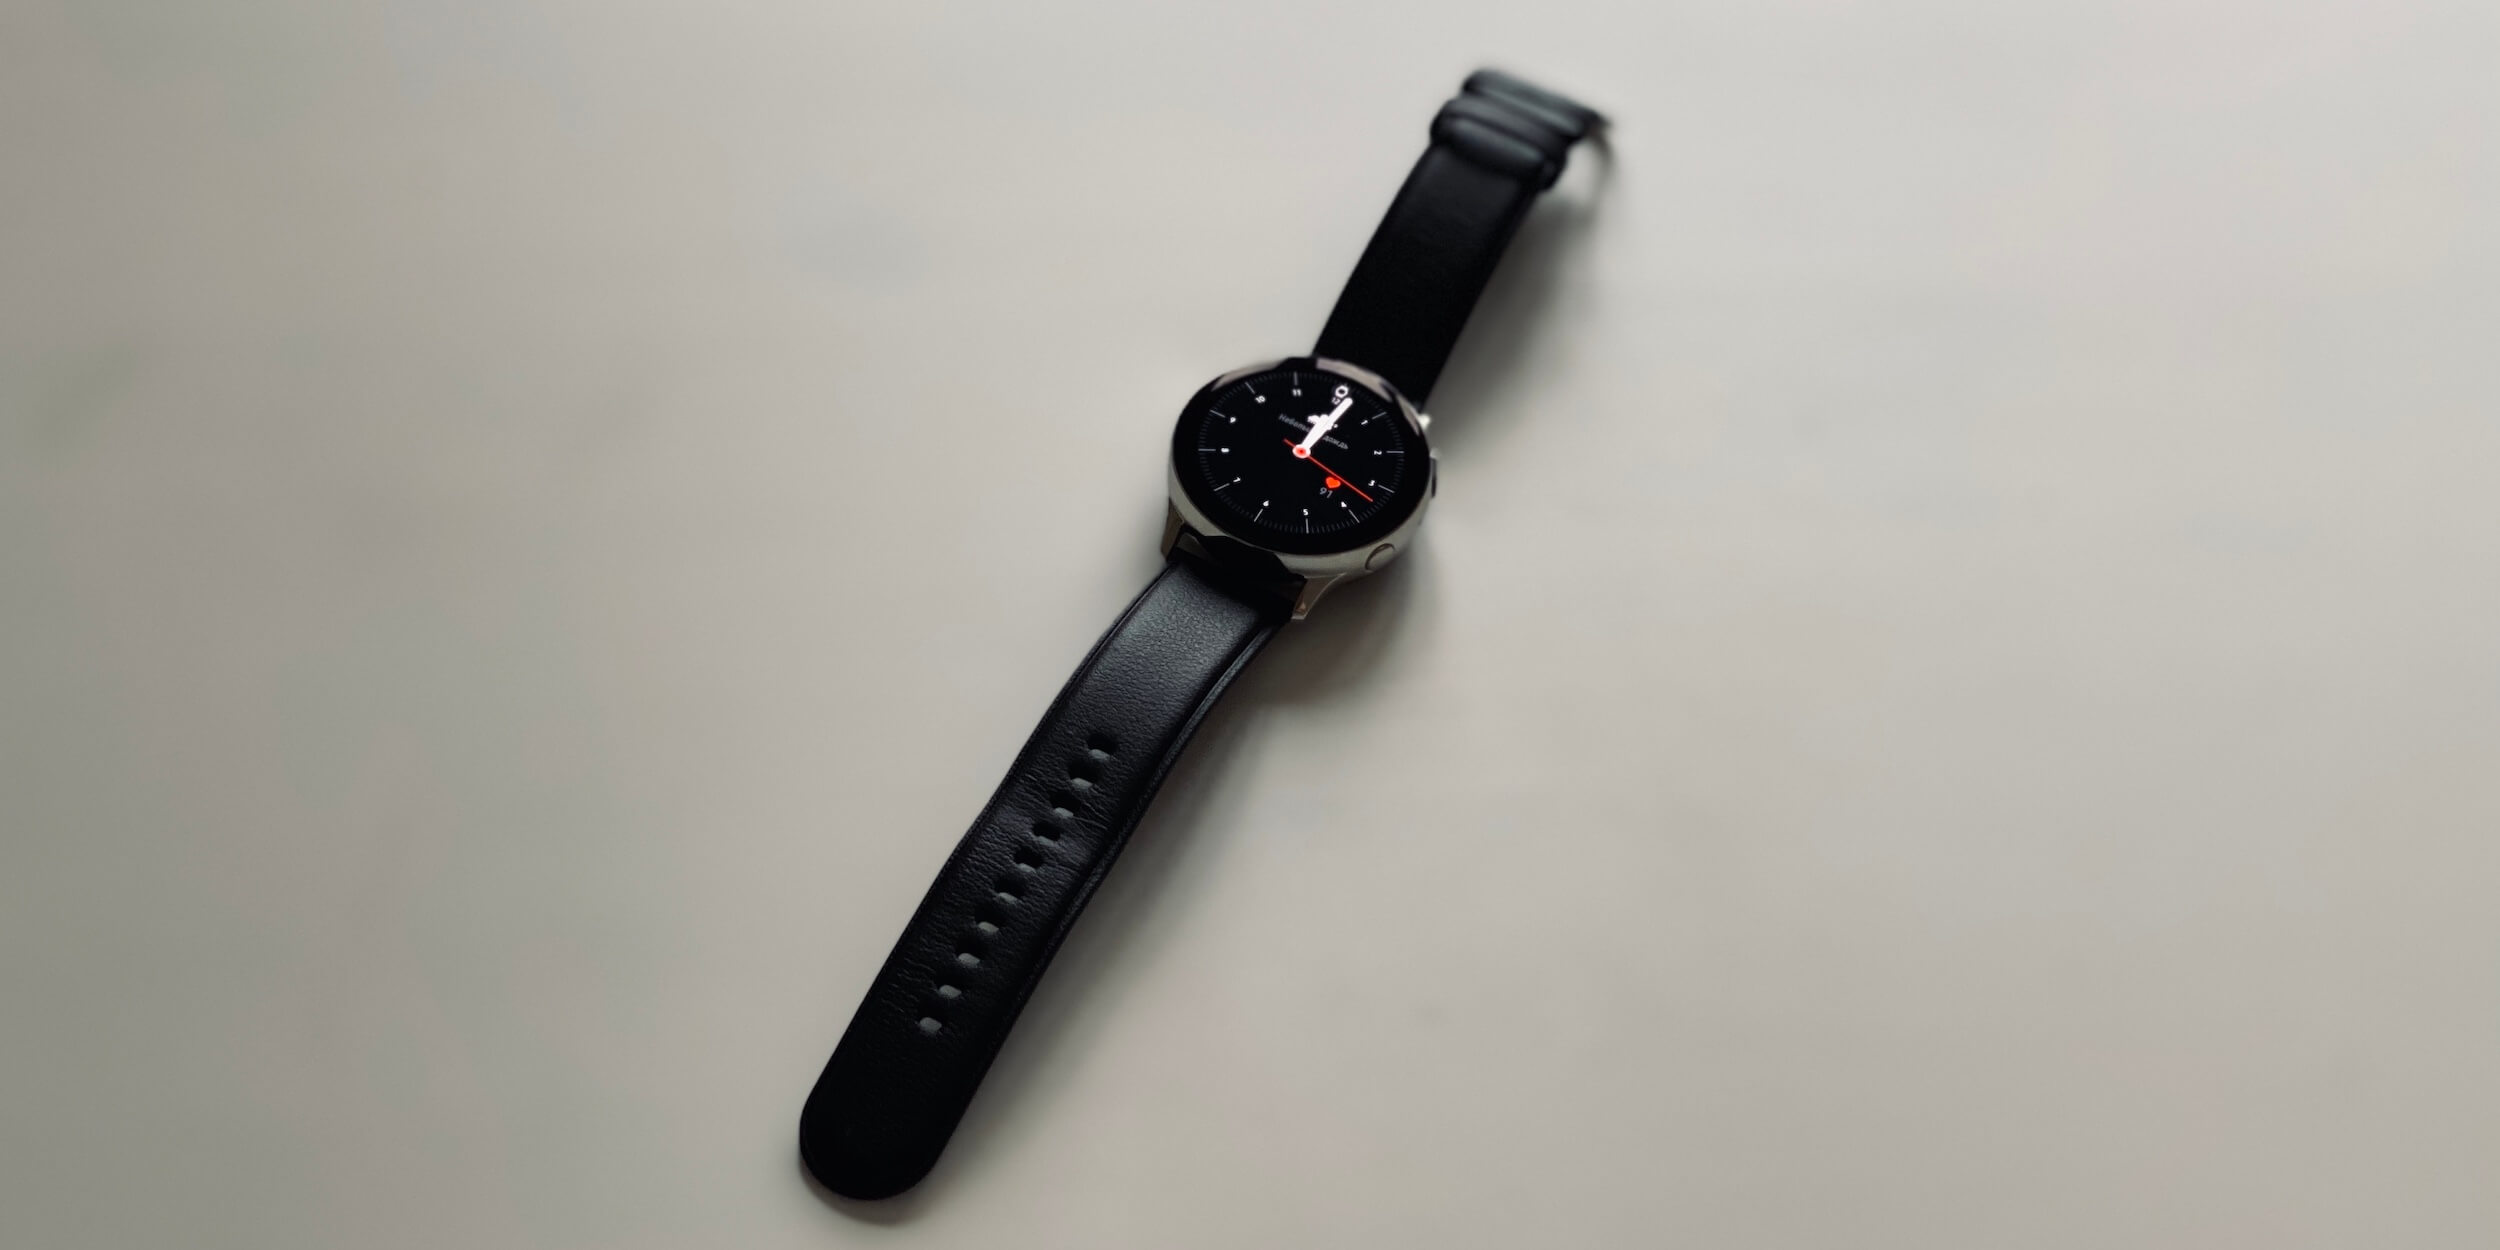 Samsung Galaxy Watch Active 2: общий вид